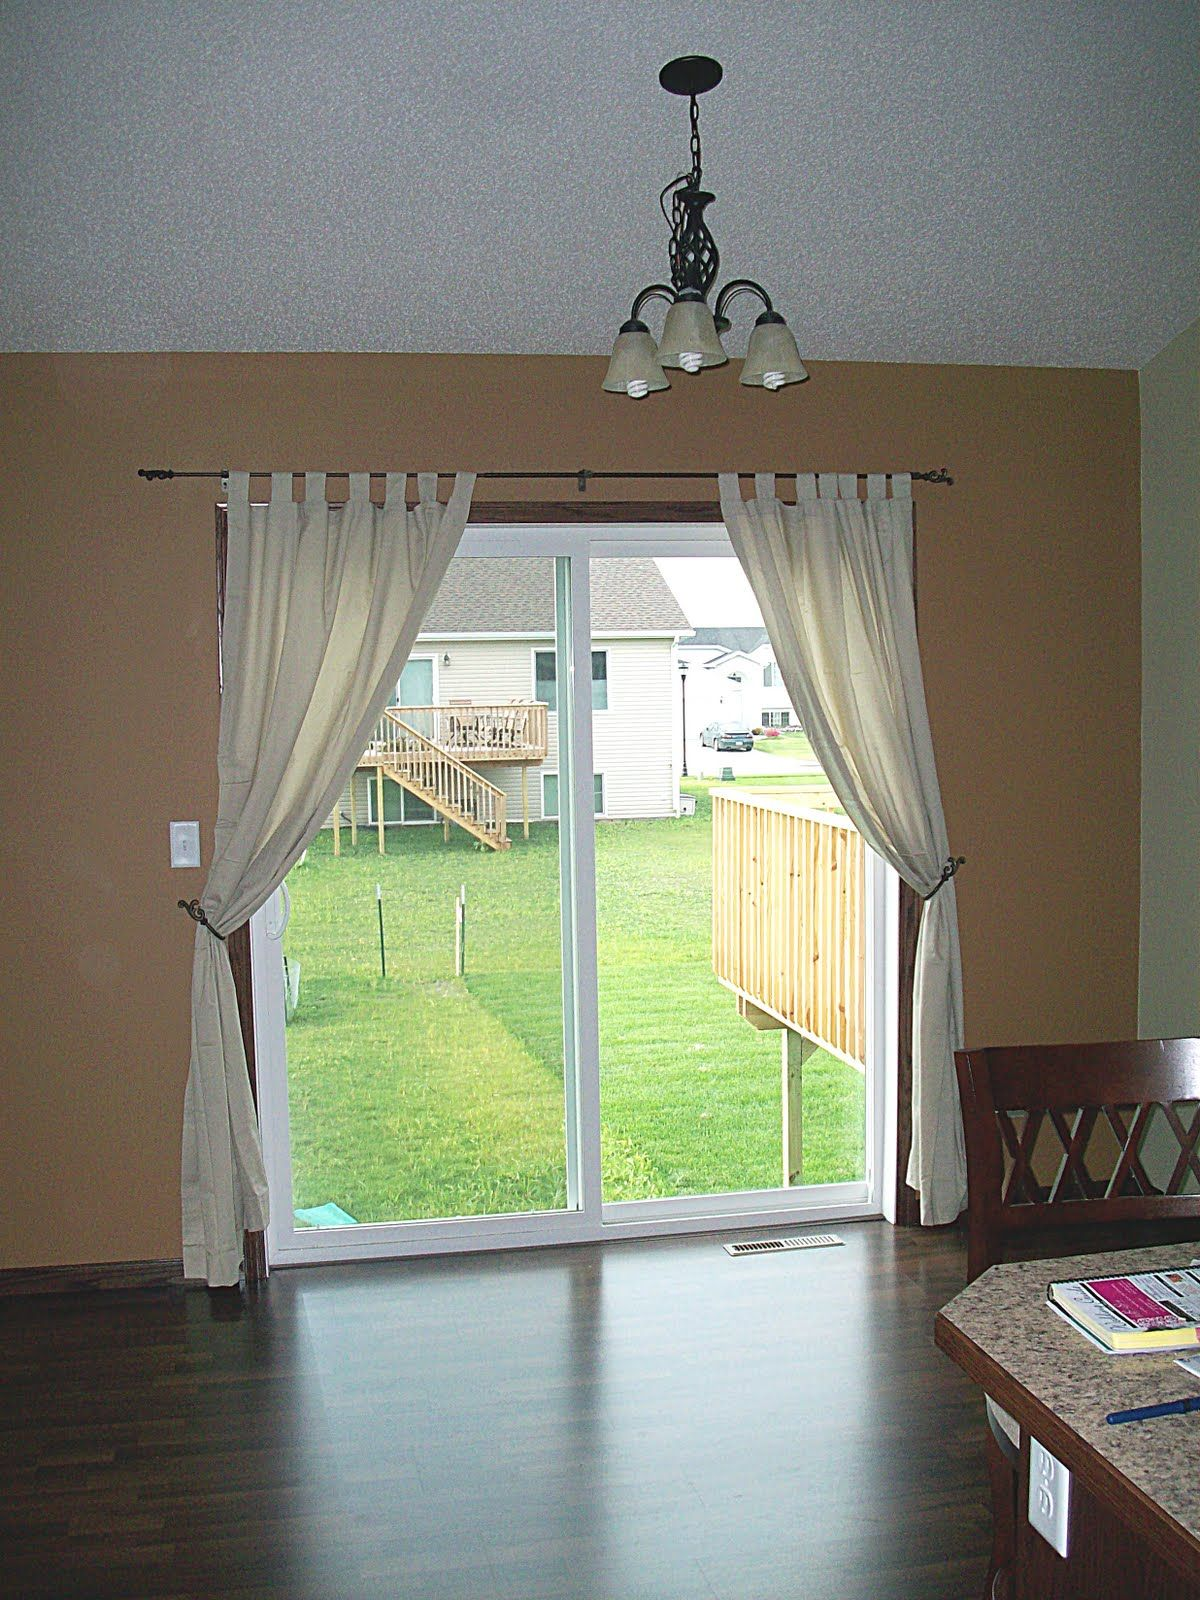 slider blinds doors best patio shades the sliding cellular for hunter curtain on douglas door vertical curtains glass honeycomb ideas